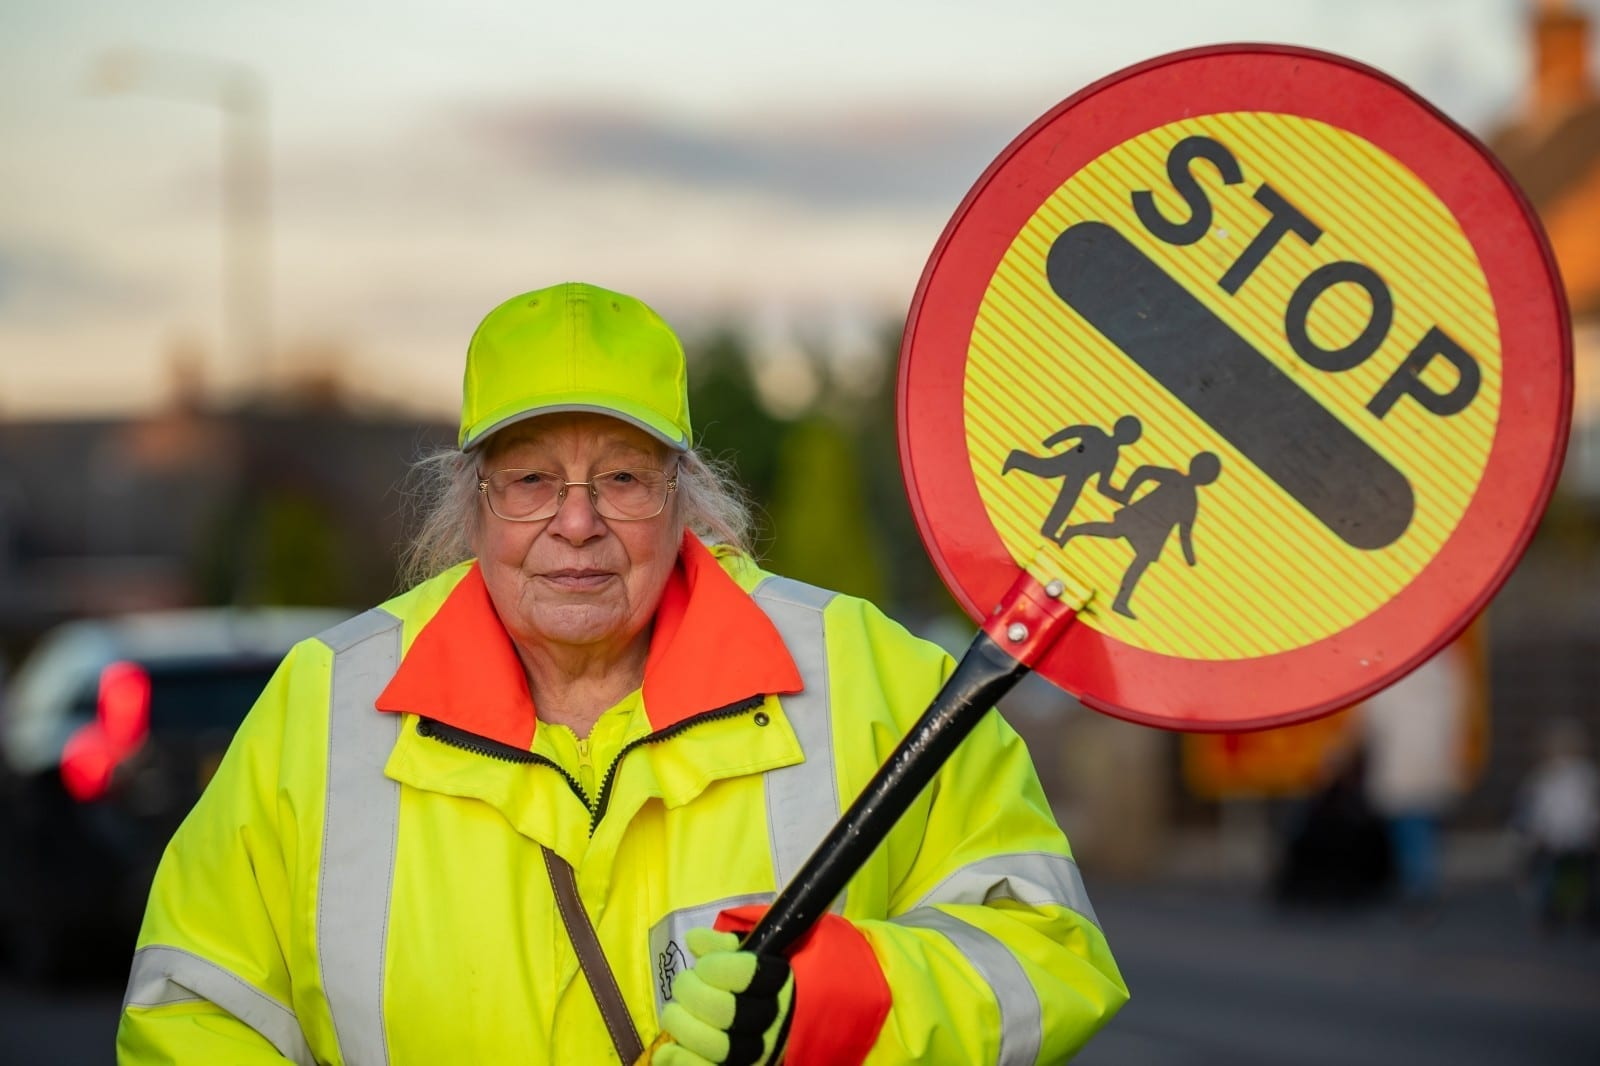 'It's The Best Job In The World!' - Britain's Longest Serving Lollipop Lady Has No Plans To Hang Up Her Stick – After 50 YEARS Patrolling The Same Stretch Of Road